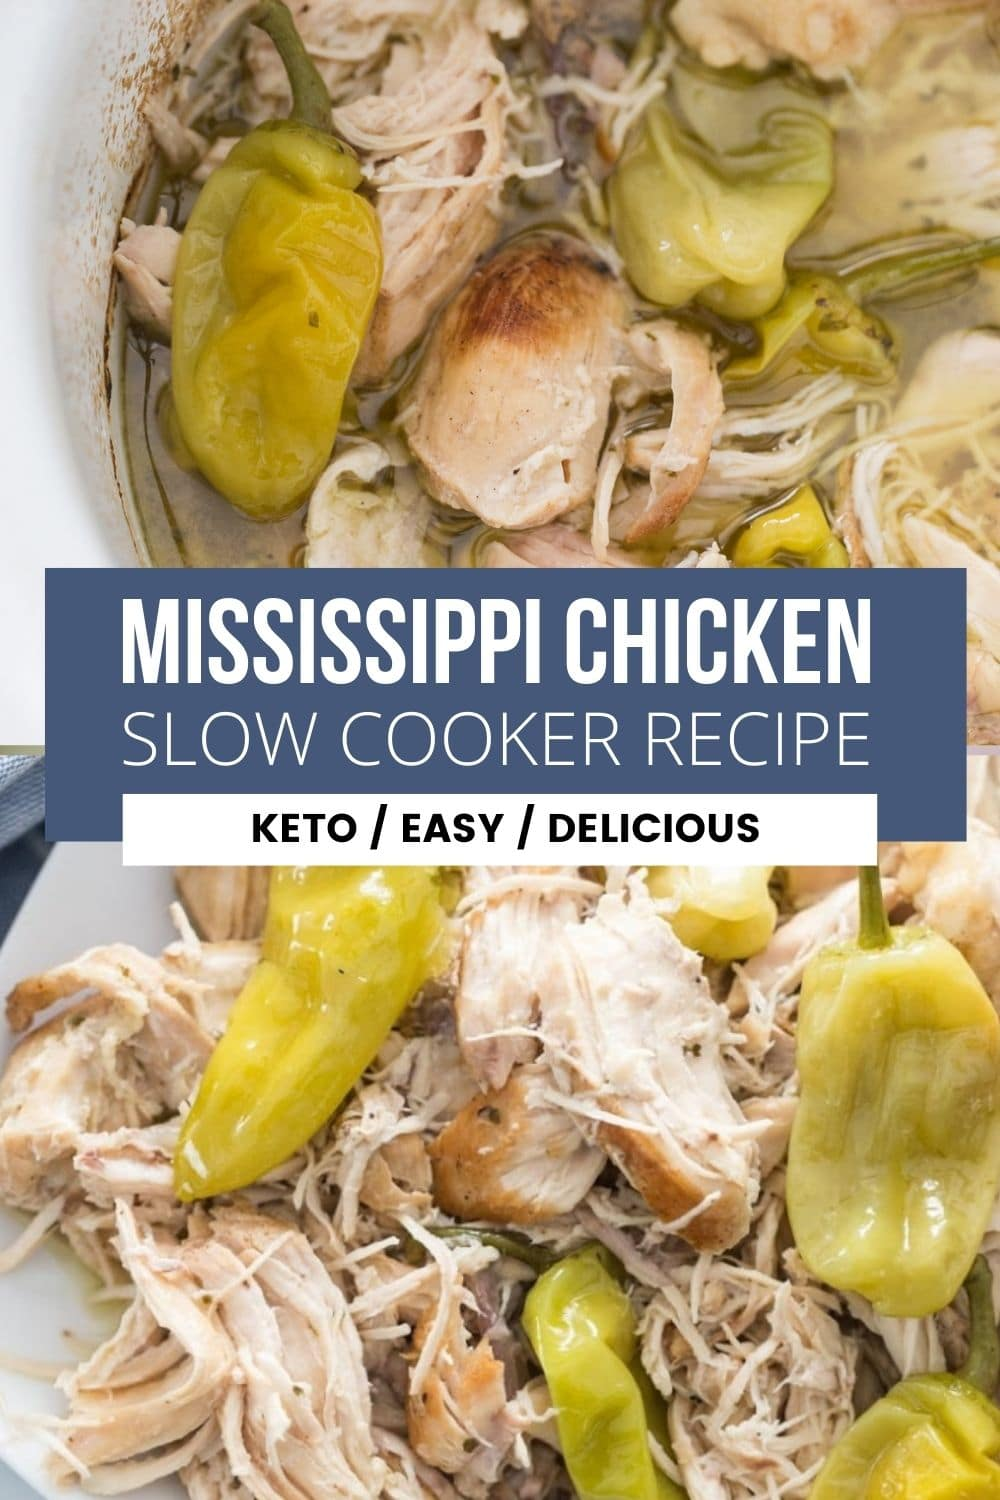 collage of Mississippi Chicken slow cooker recipe